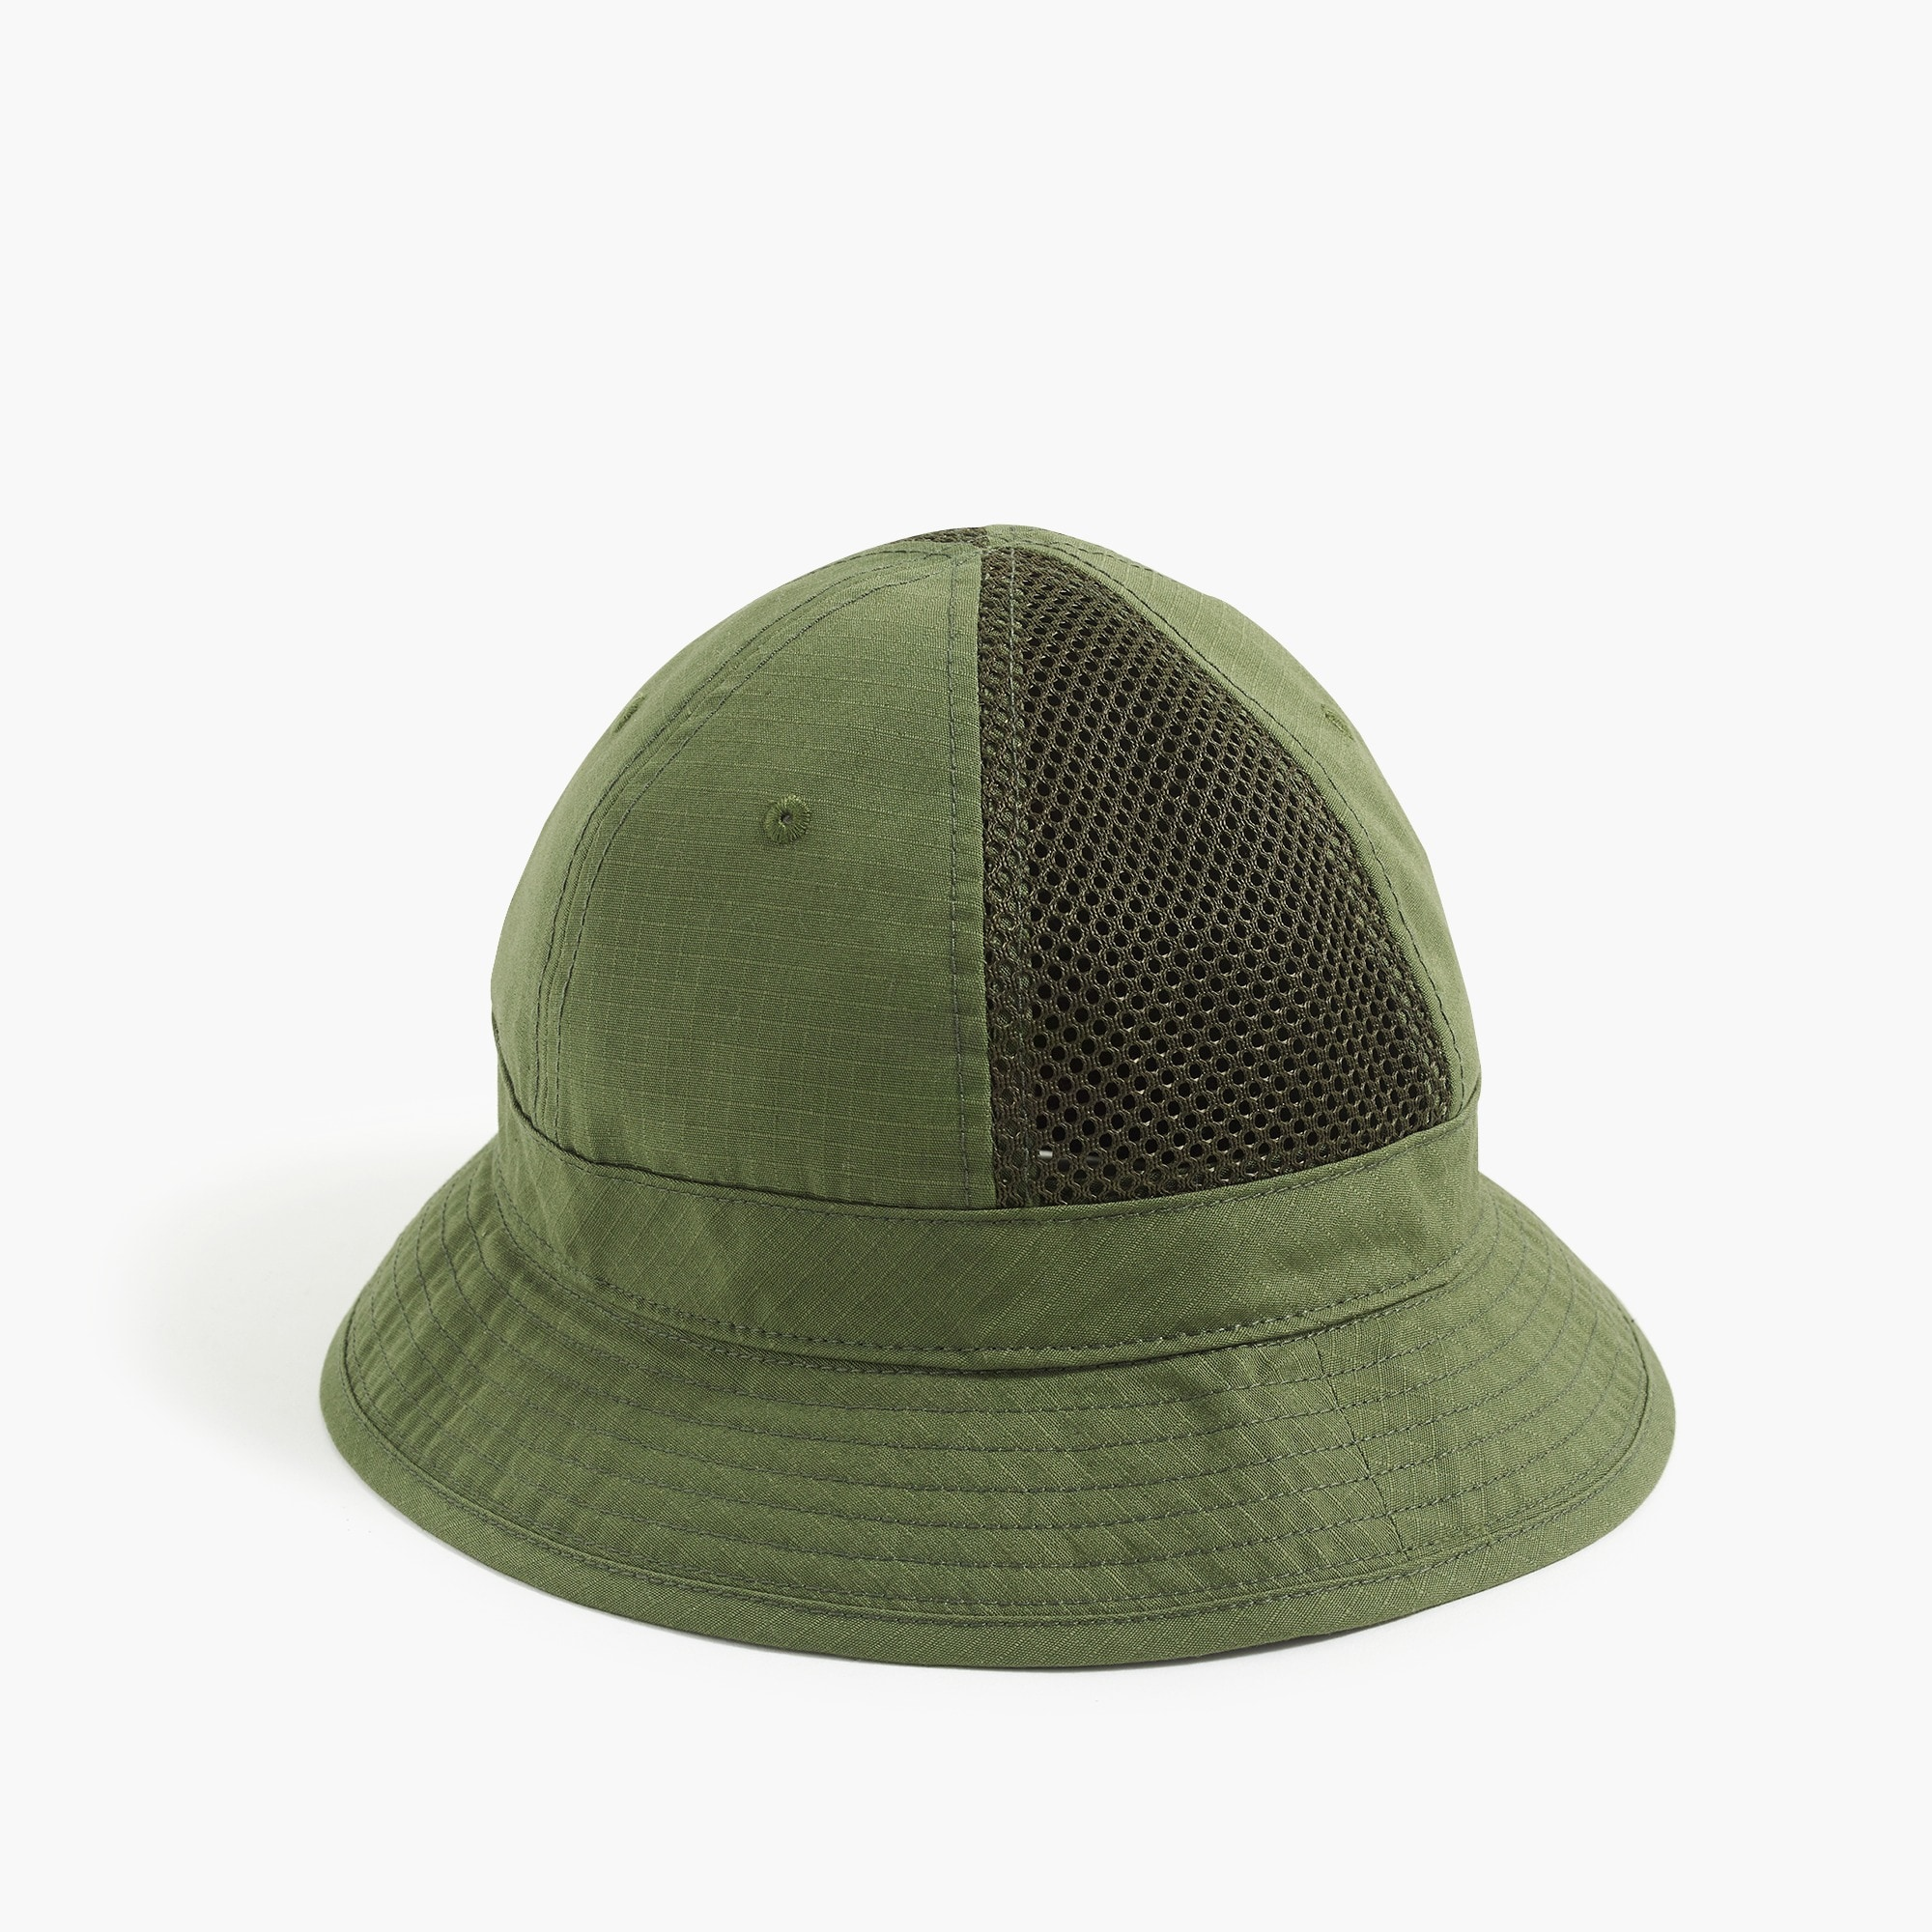 Mesh paneled bucket hat men accessories c